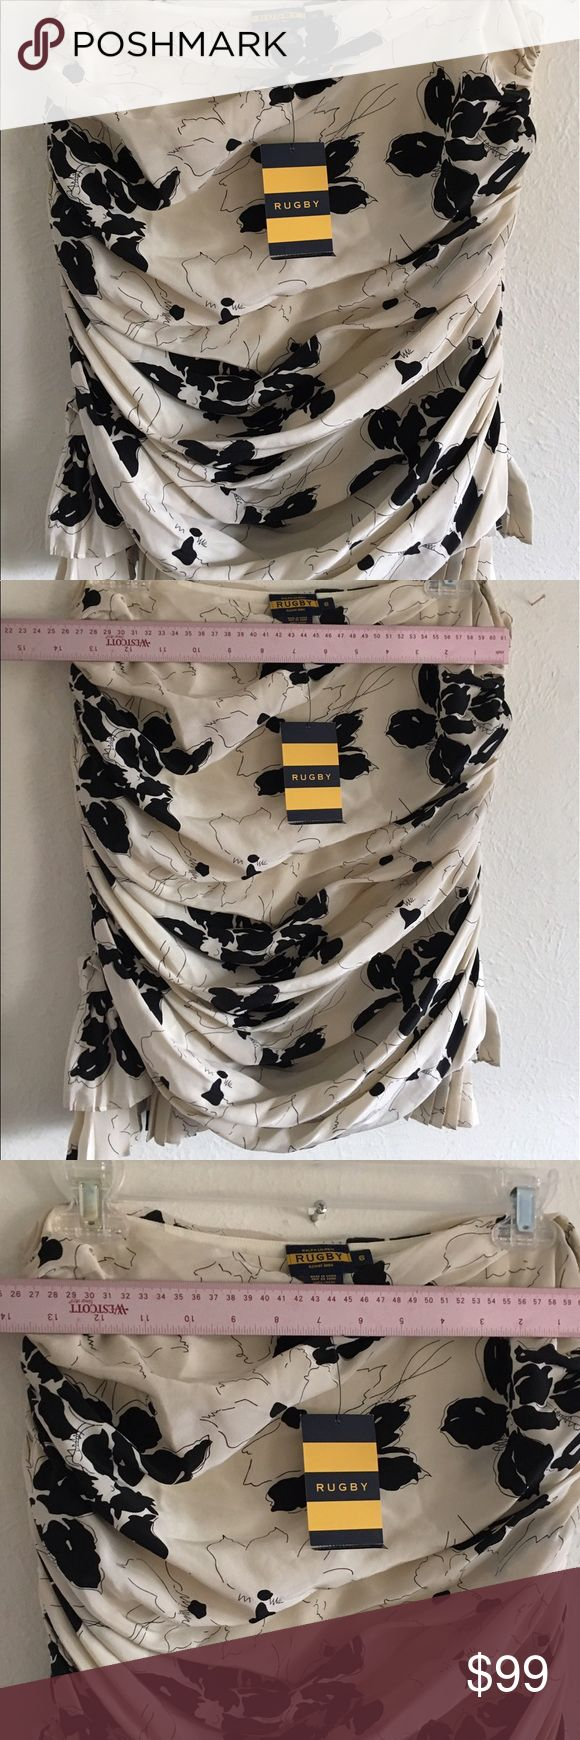 NWT Ralph Lauren top skirt ruffles Gorgeous silk! Can be worn as strapless top or skirt ... solid ruffles gorgeous ! Rugby a Ralph Lauren's expensive and discontinued brand and my favorite ! Size 6 Ralph Lauren Skirts